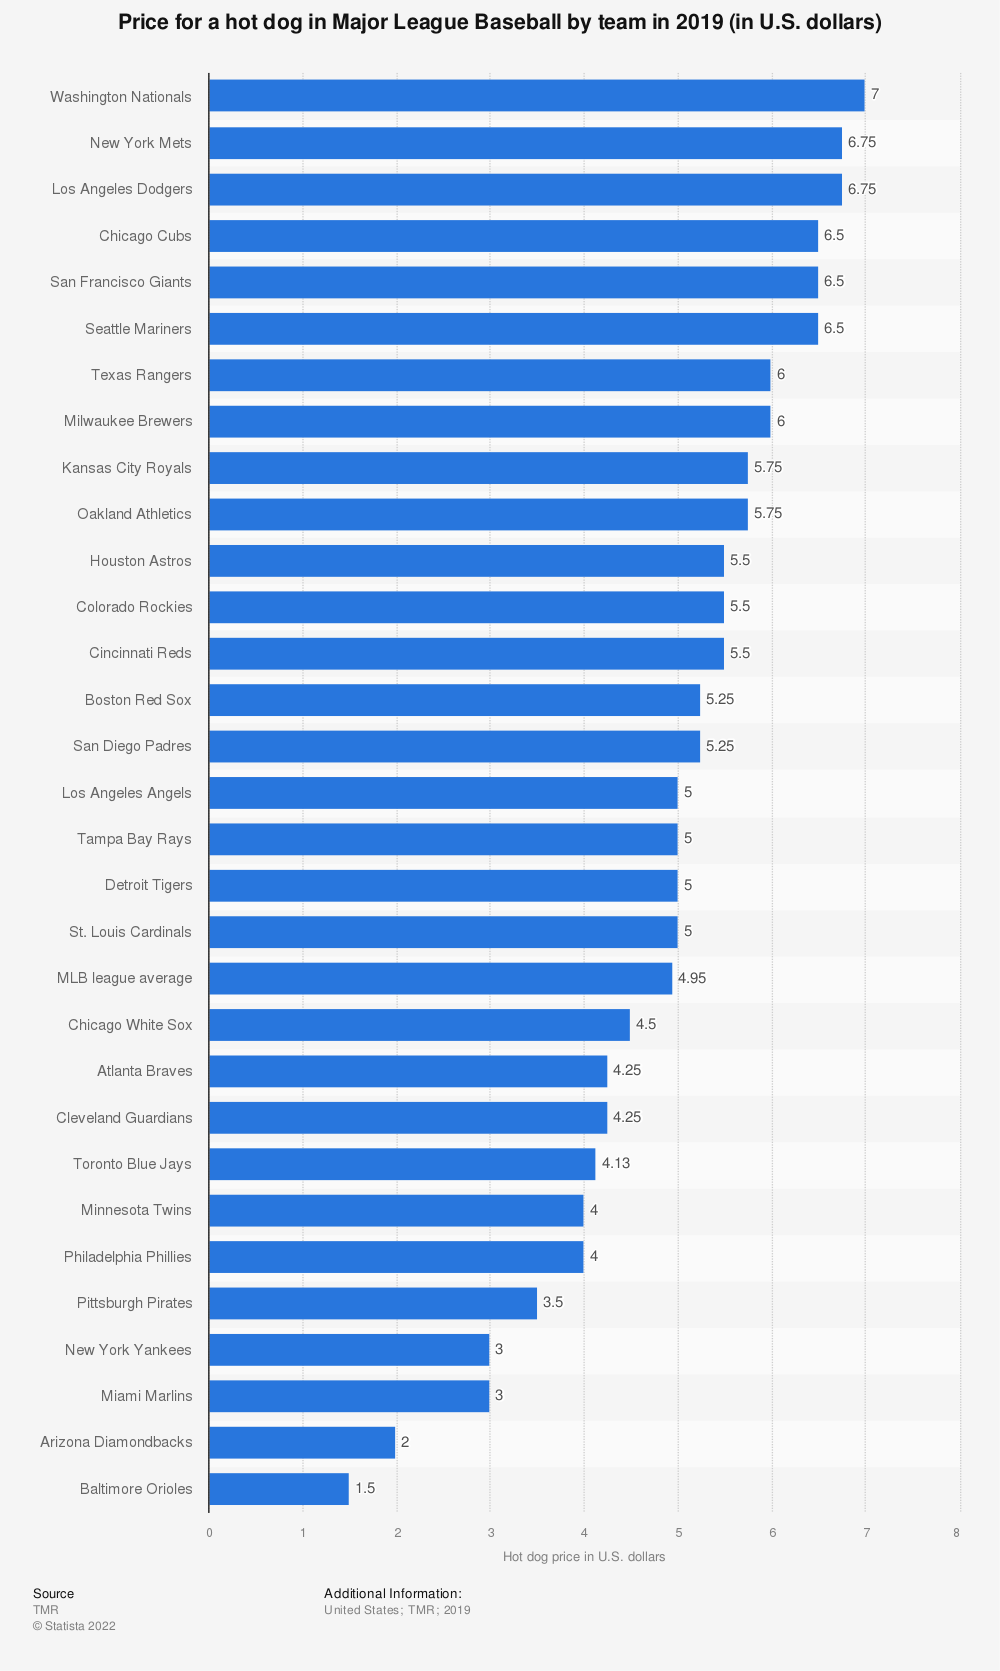 Statistic: Price for a hot dog in Major League Baseball by team in 2019 (in U.S. dollars) | Statista